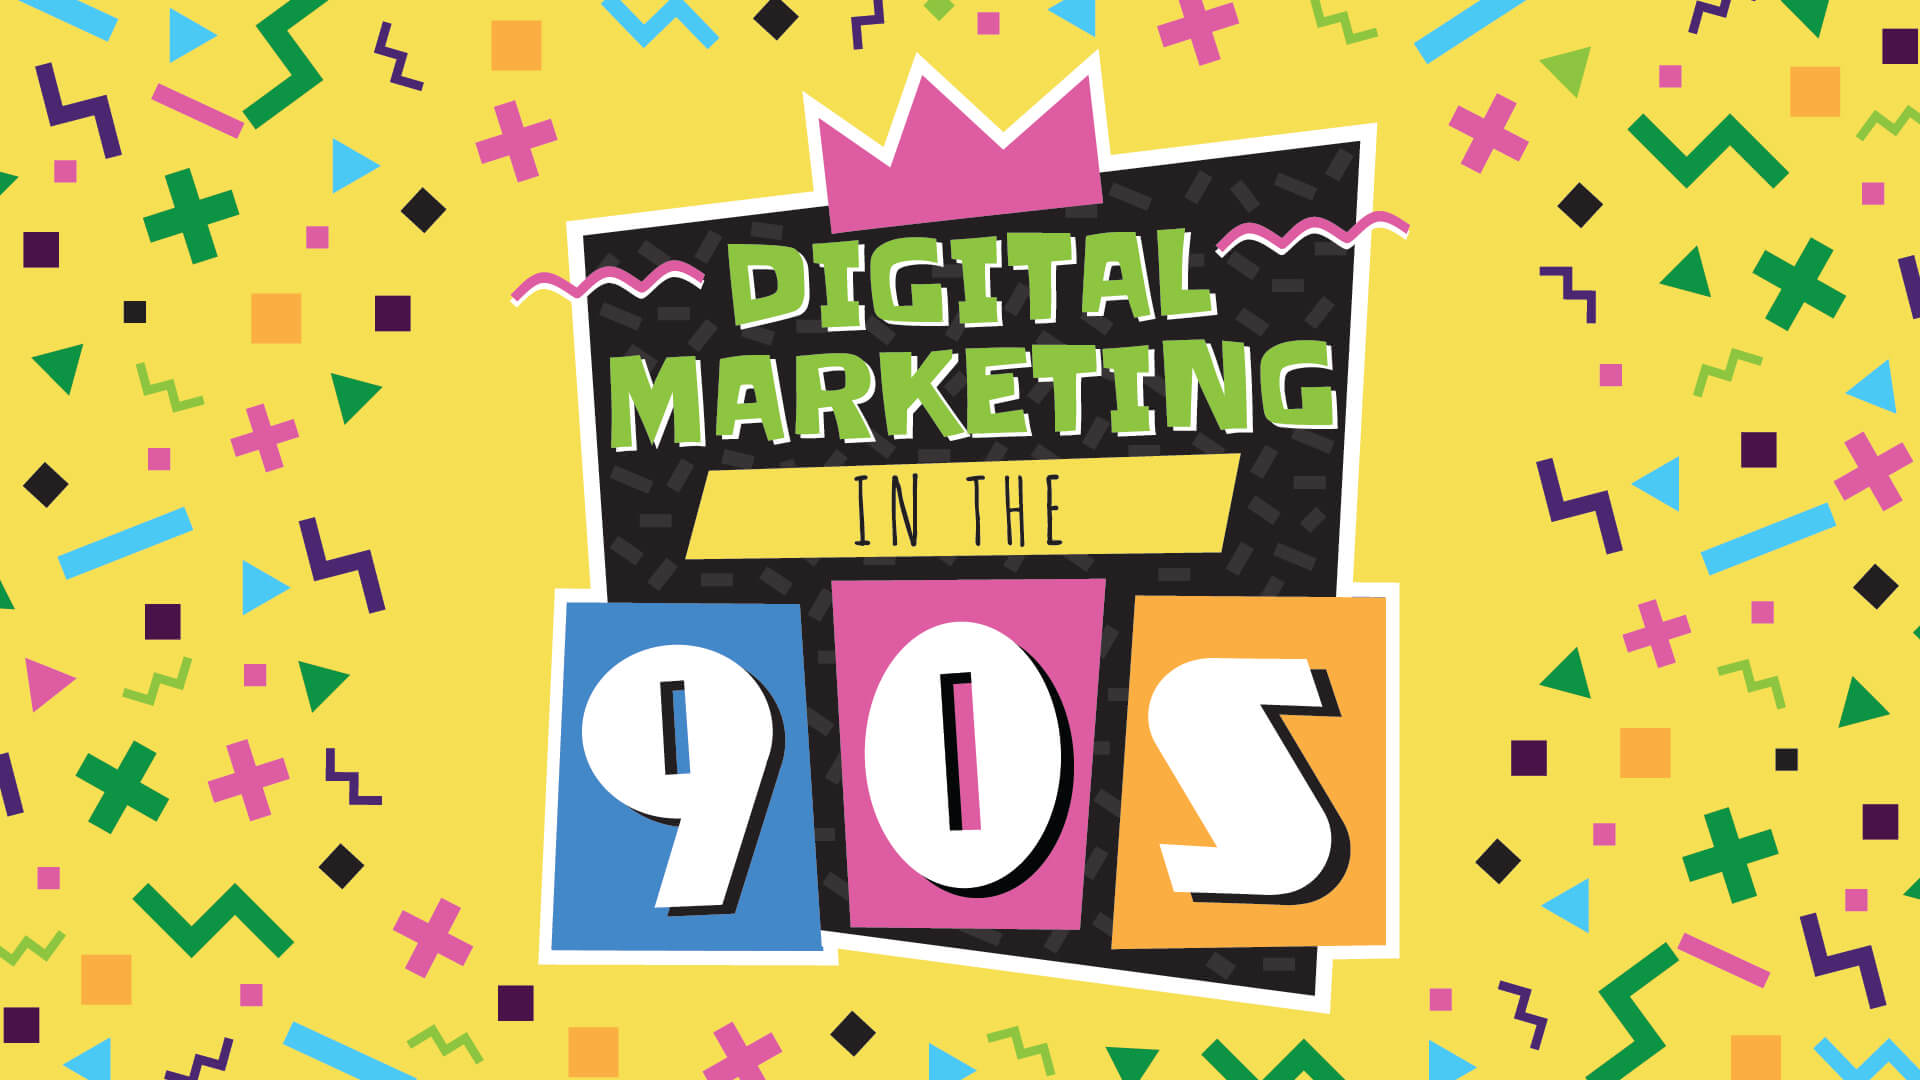 Digital Marketing in The 90s | Mainstreethost